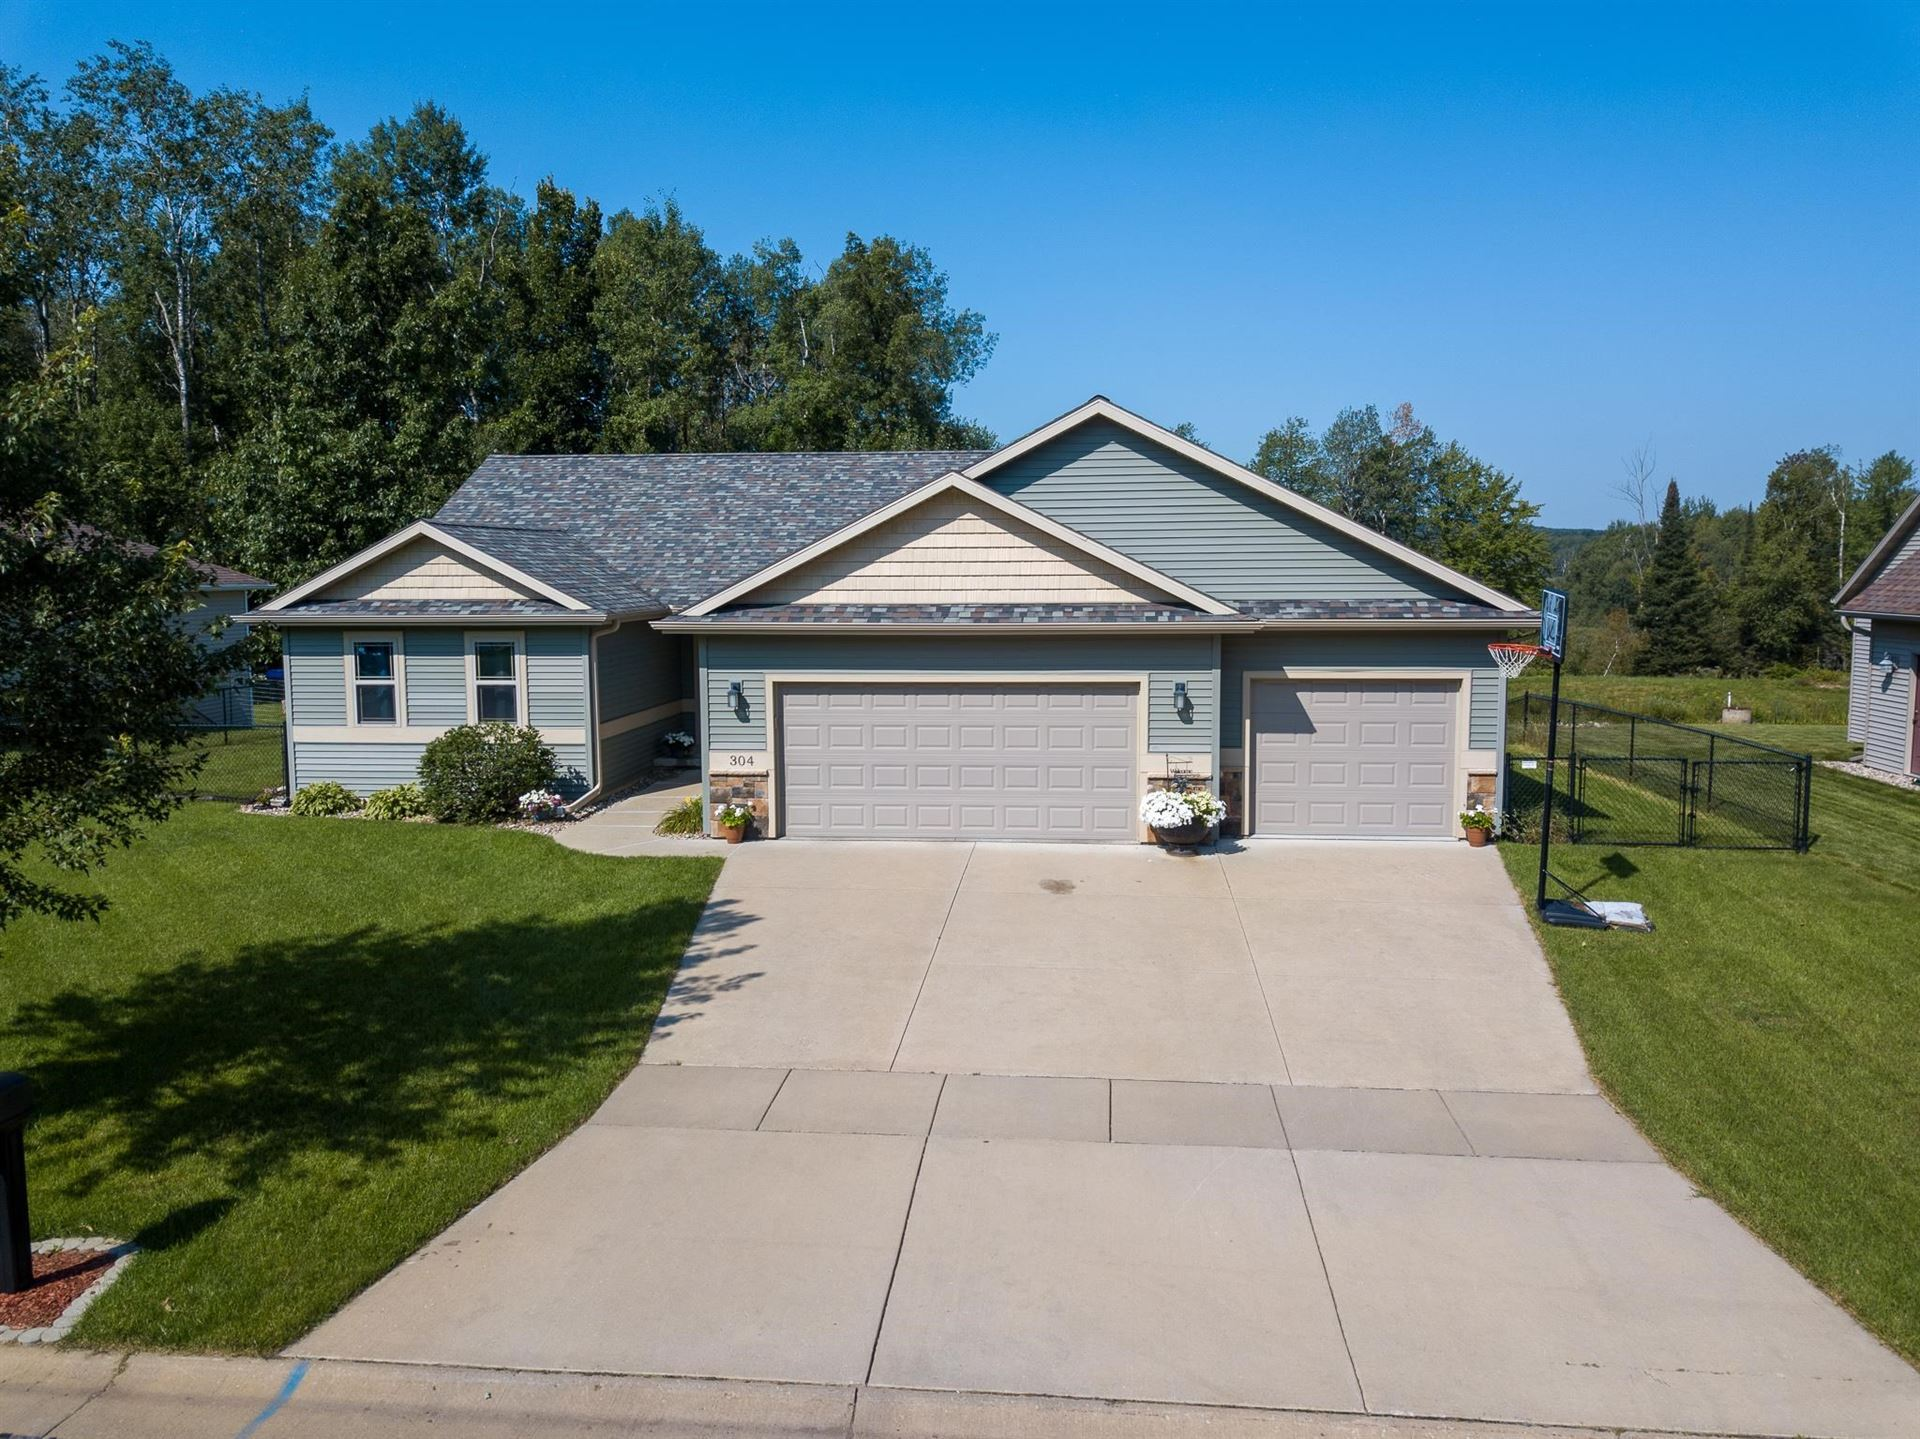 Photo for 304 S 68TH AVENUE, Wausau, WI 54401 (MLS # 22104992)